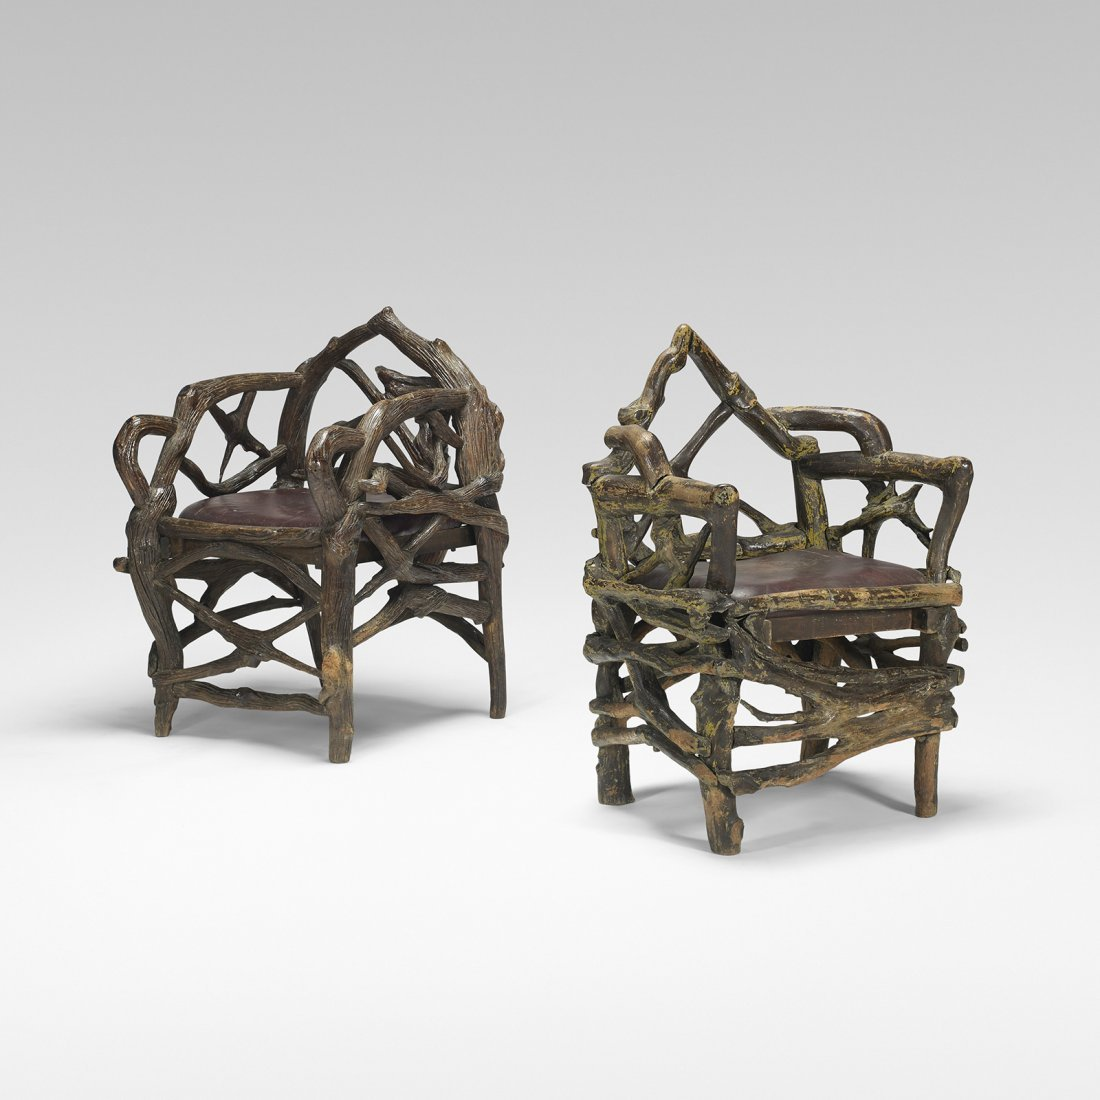 American pair of chairs from Al Capone's retreat